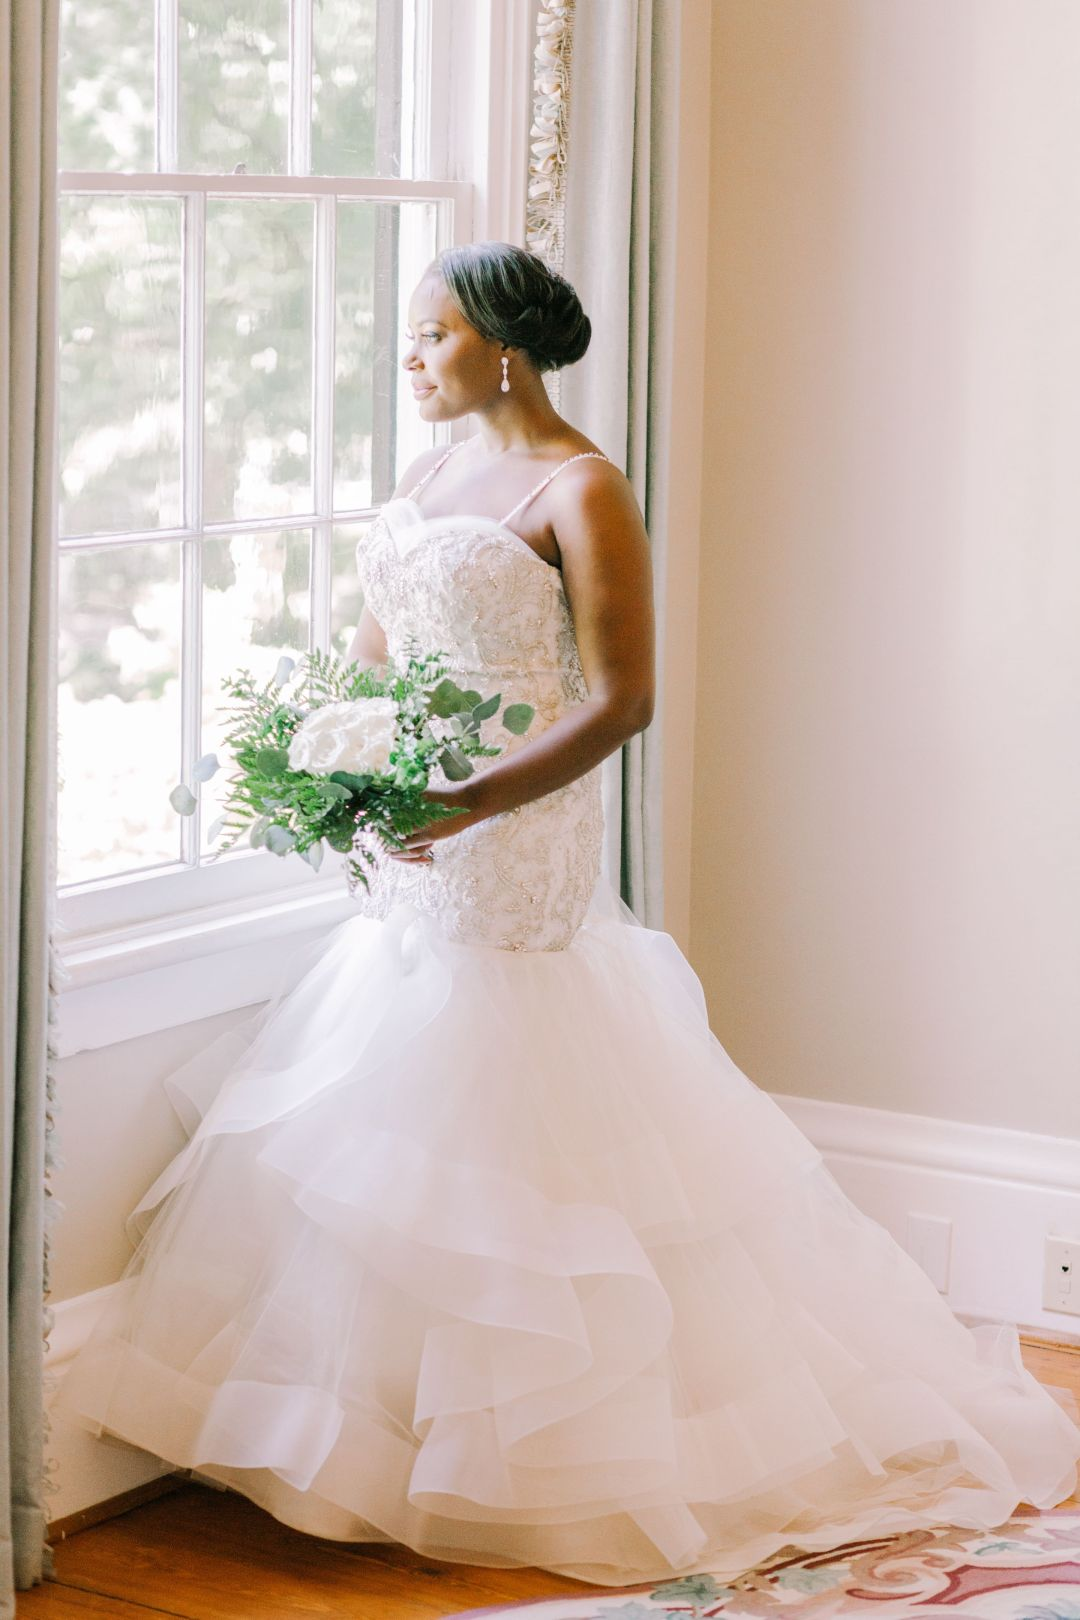 Morgan-Bridals-23-1 South Carolina Wedding with Classic Style